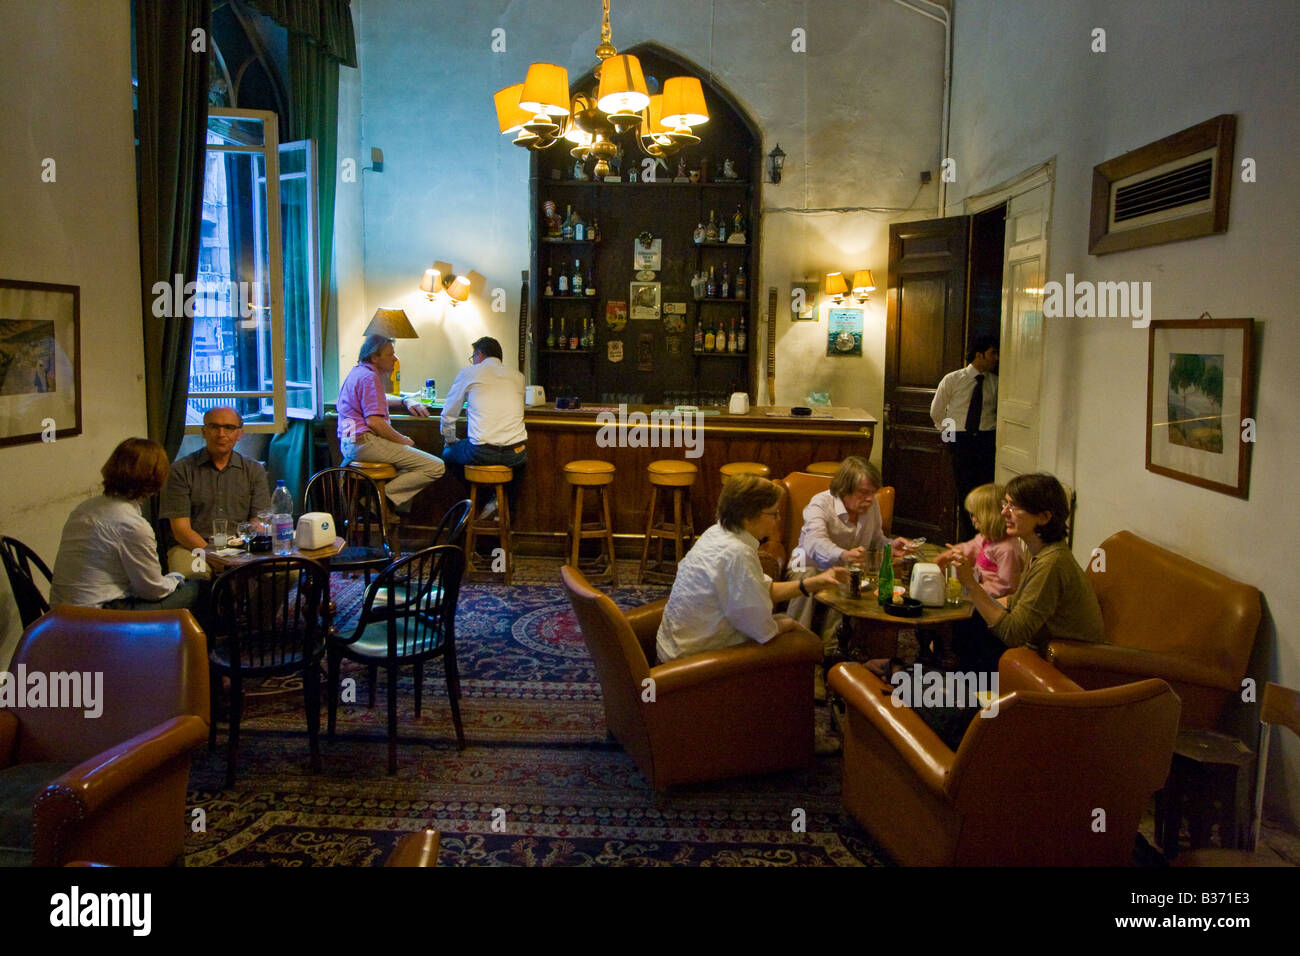 The Bar Inside the Historic Baron Hotel in Aleppo Syria - Stock Image